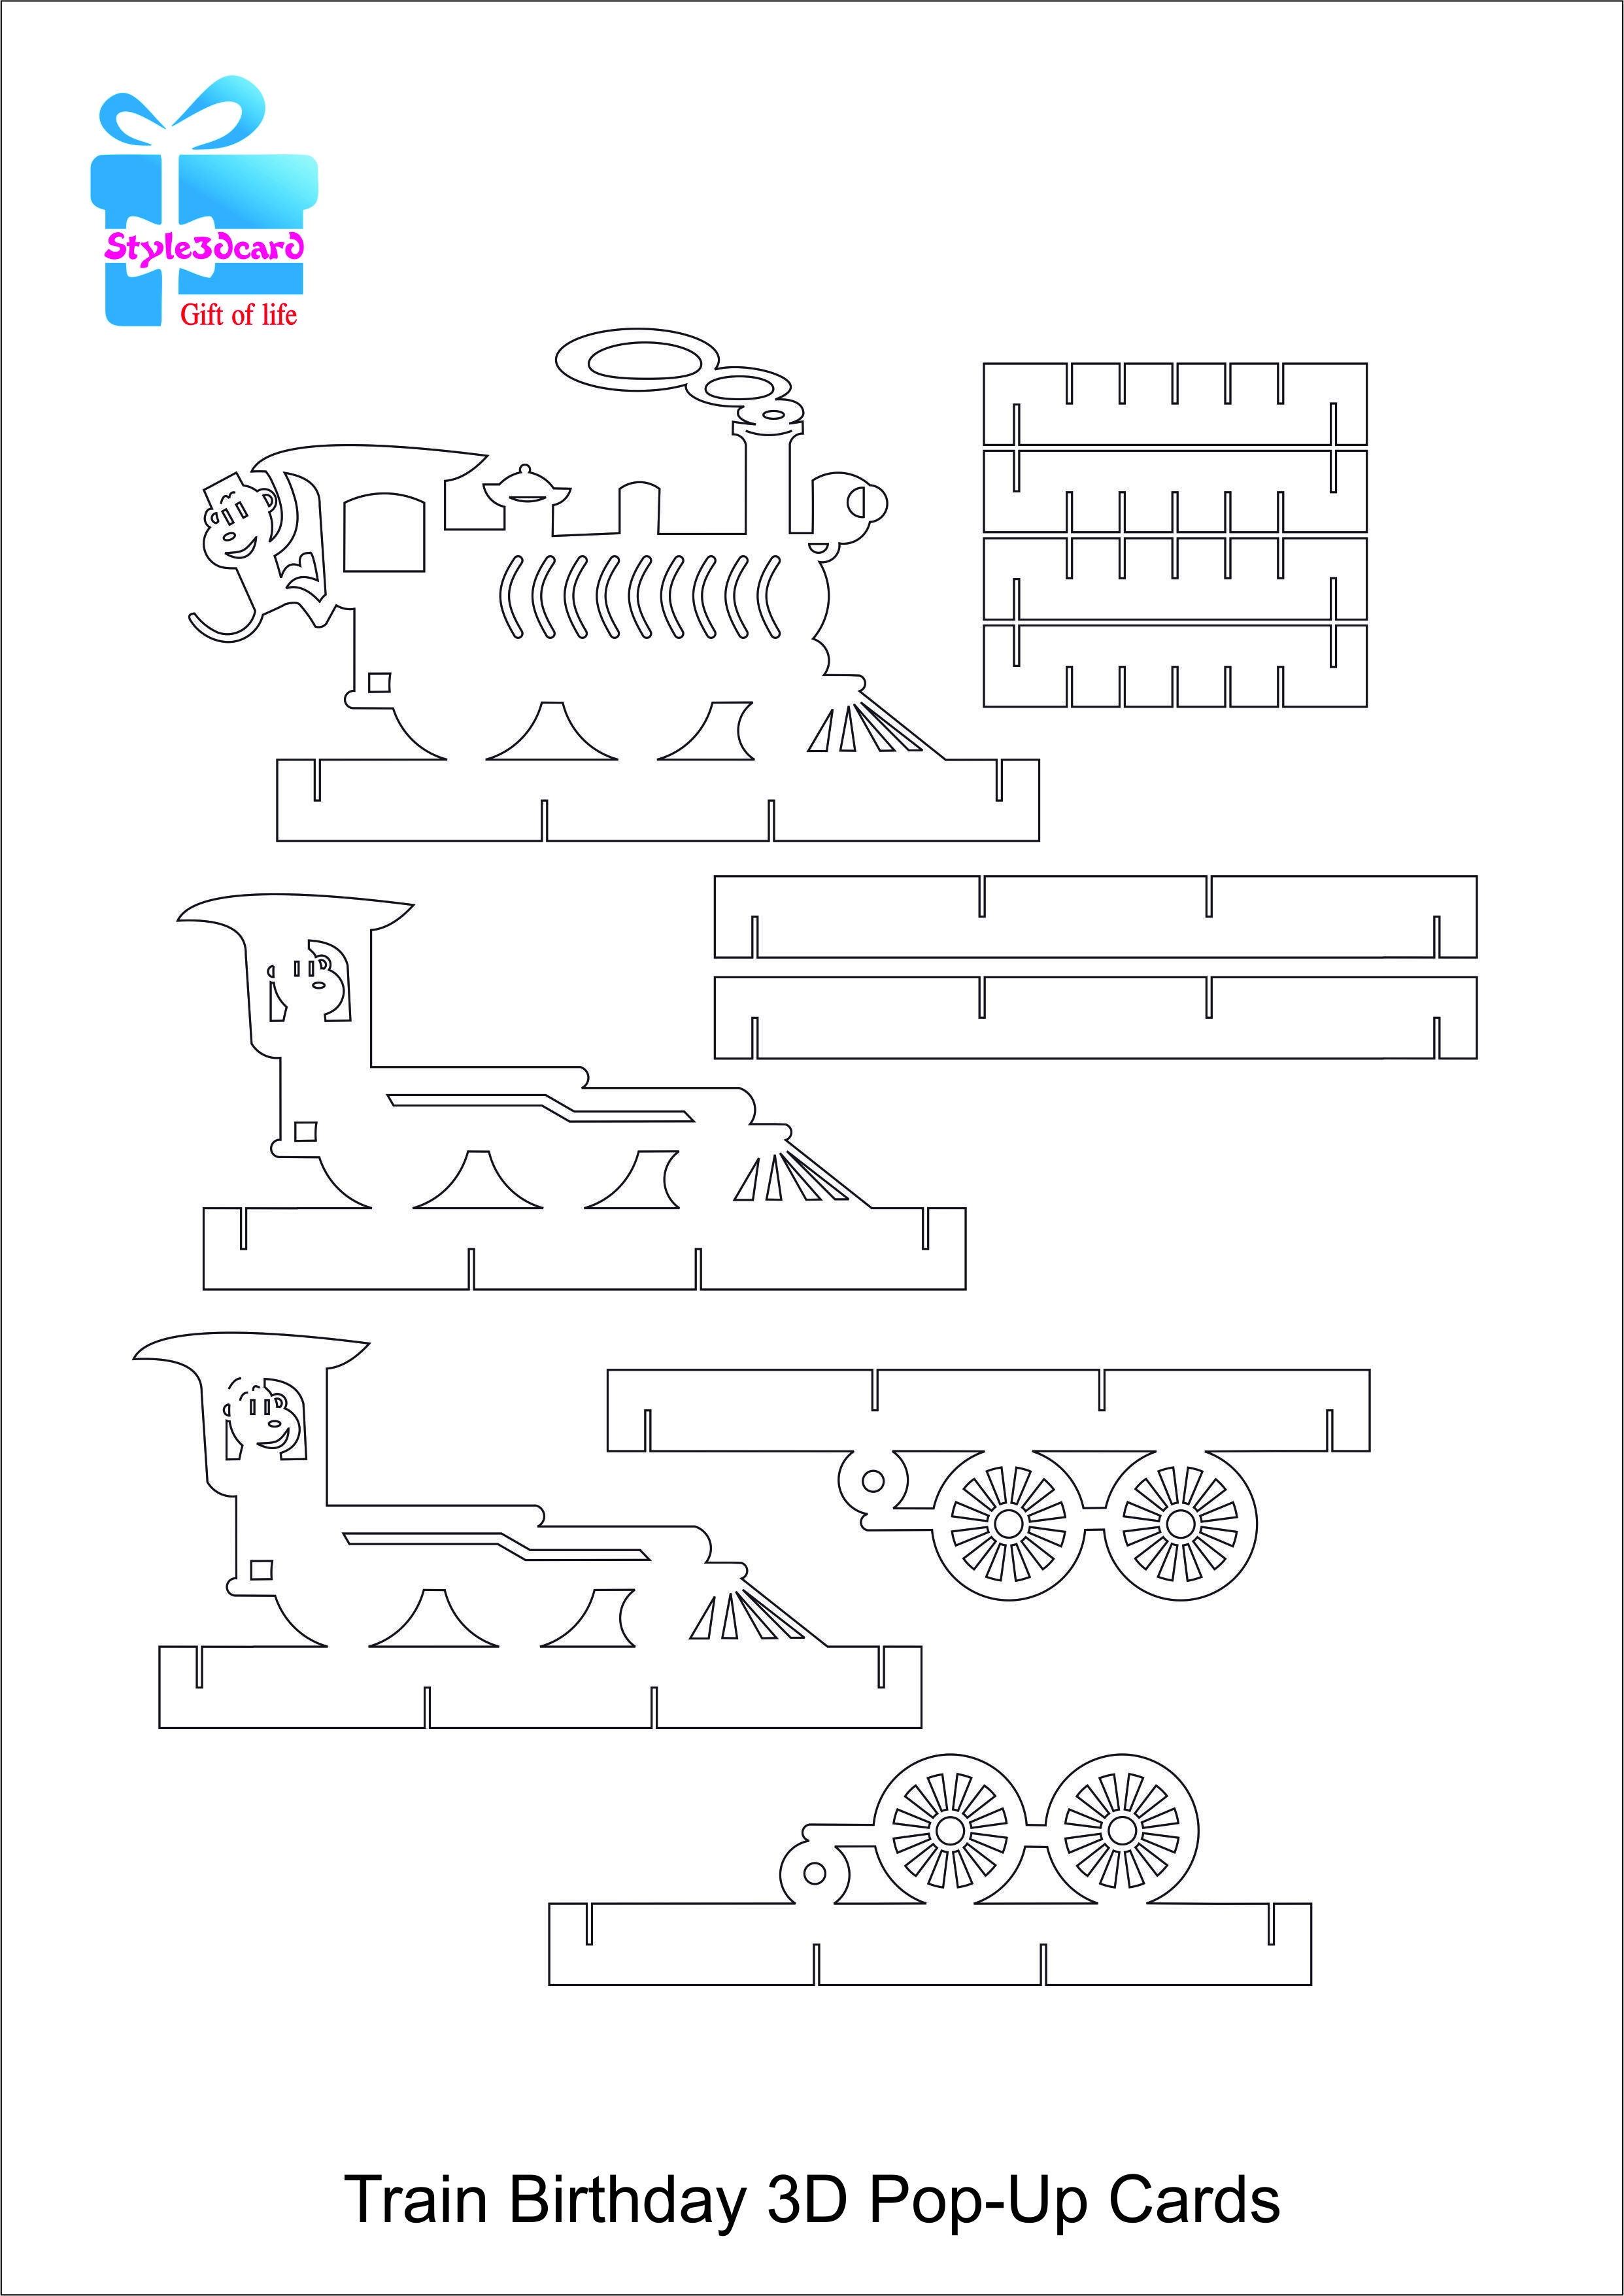 Train Pop Up Birthday Card/kirigami Pattern 2 | Card- Techniques And - Free Printable Kirigami Pop Up Card Patterns